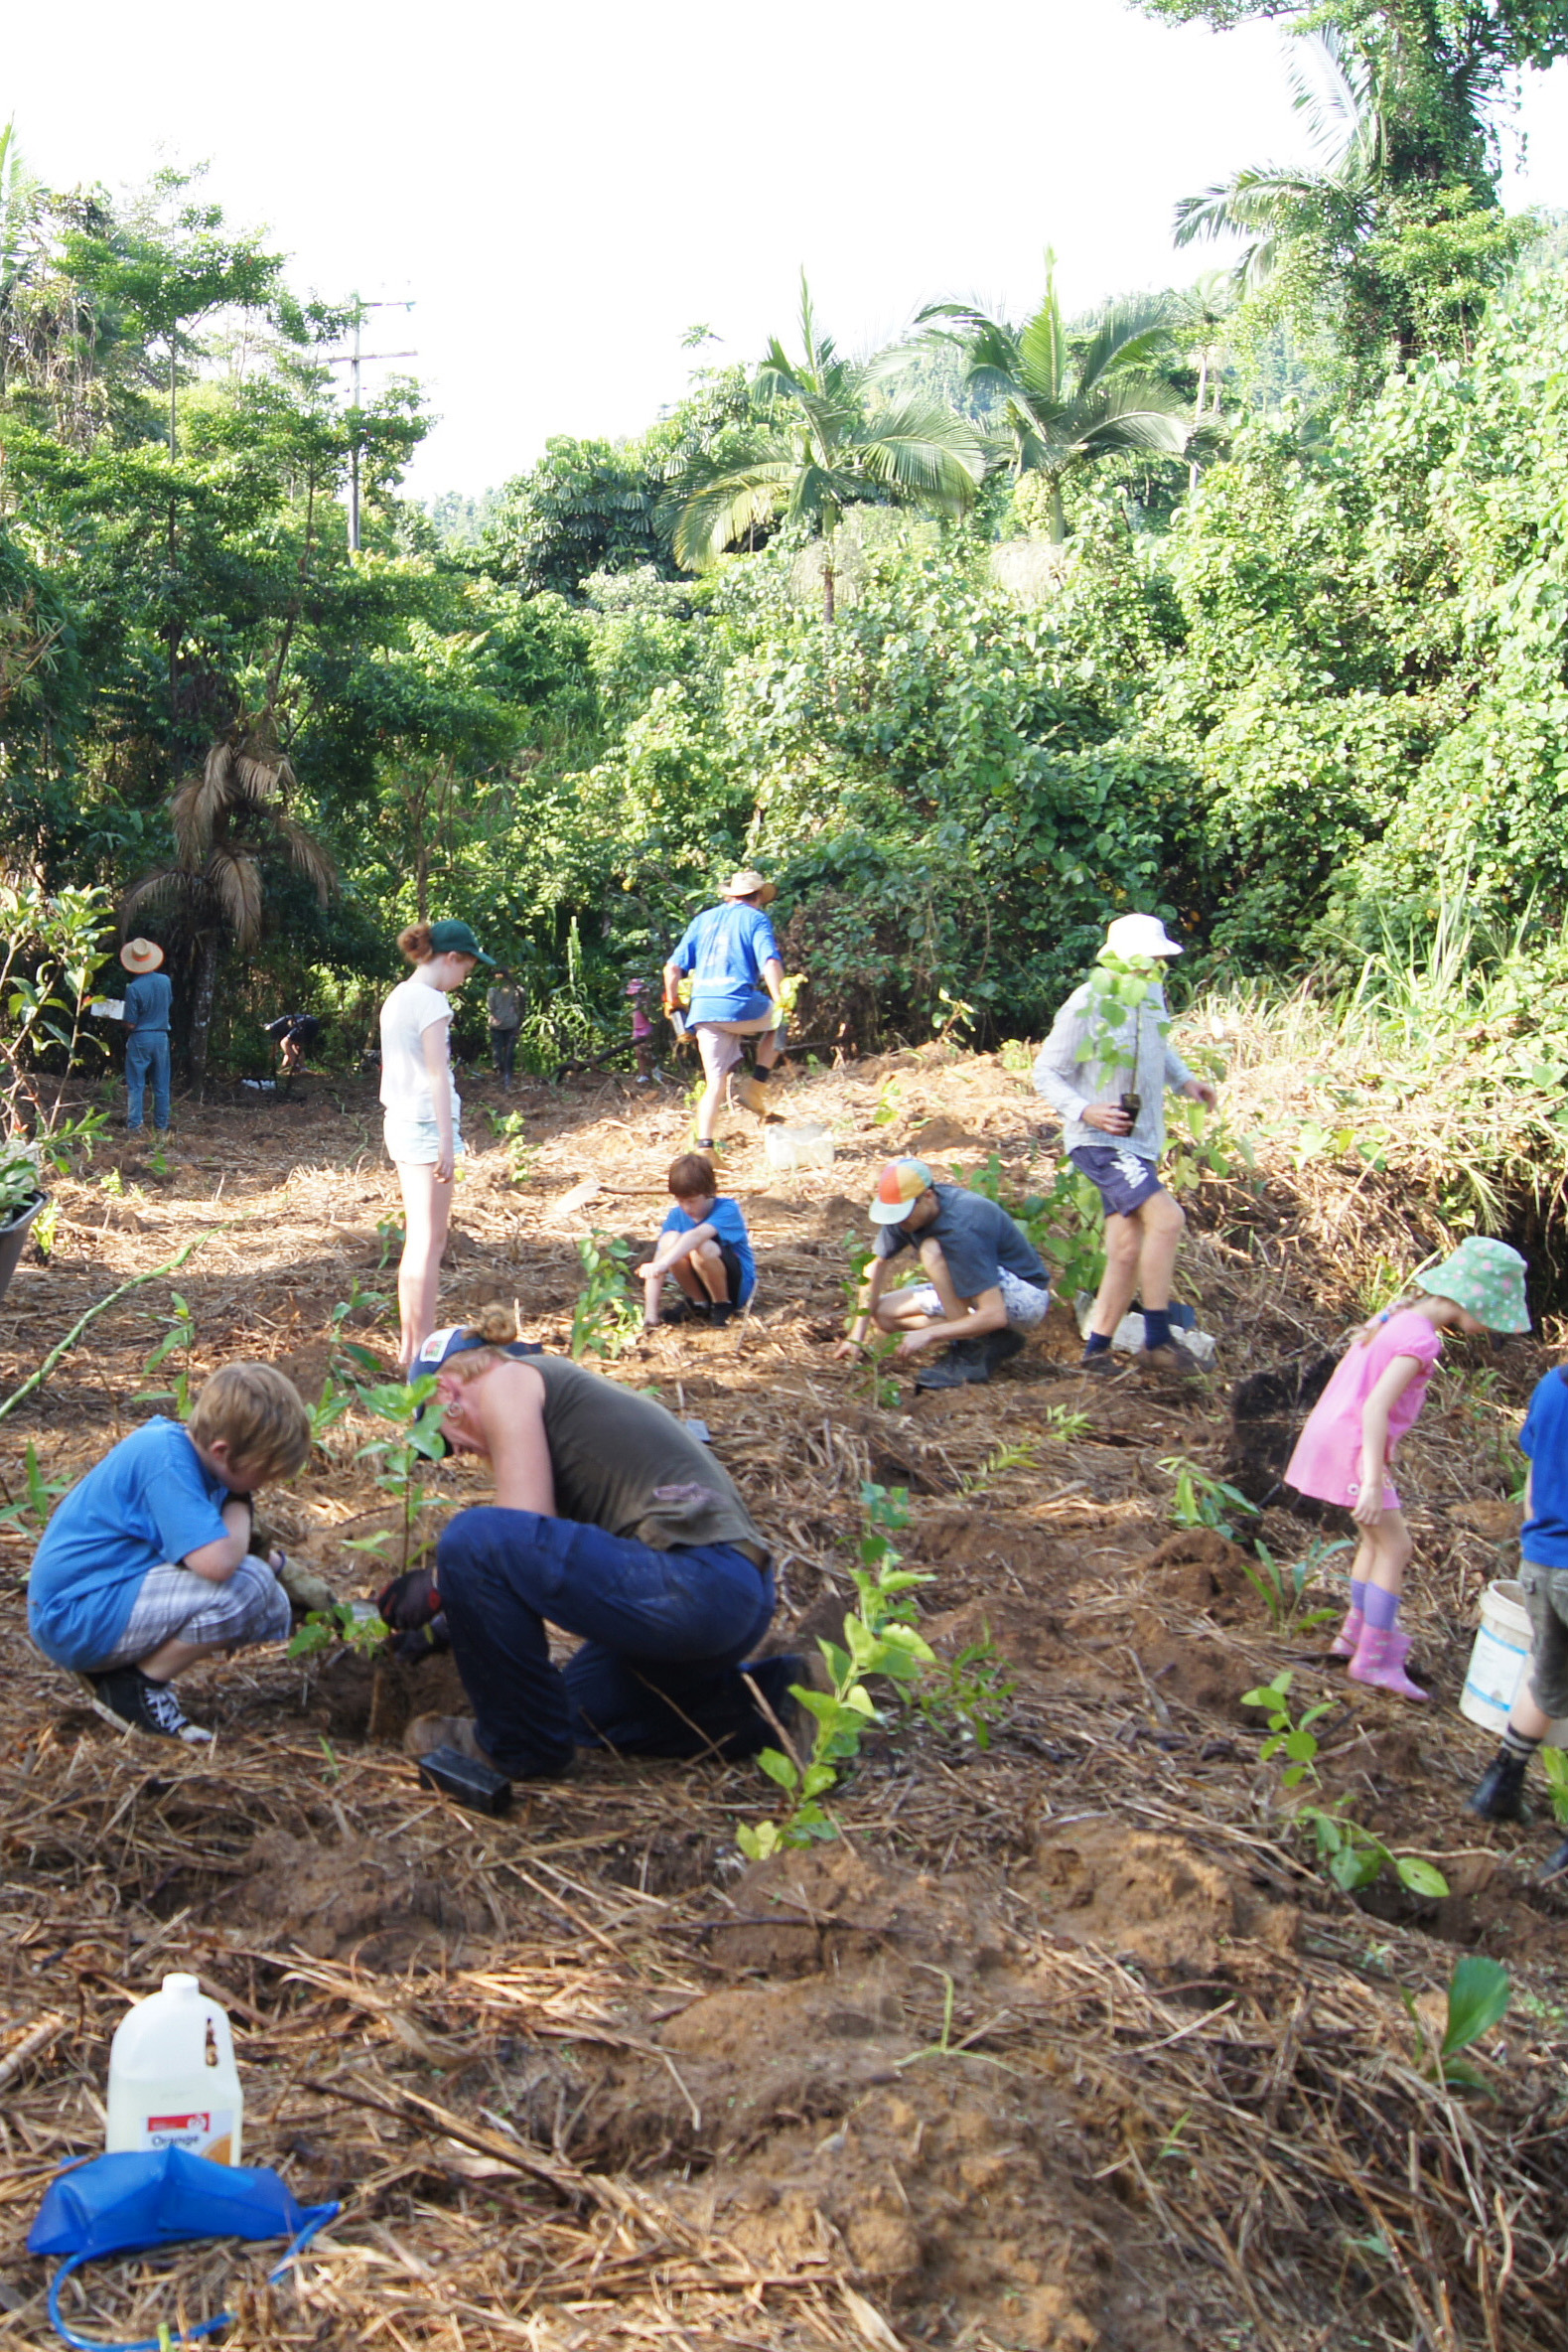 A group of people planting trees